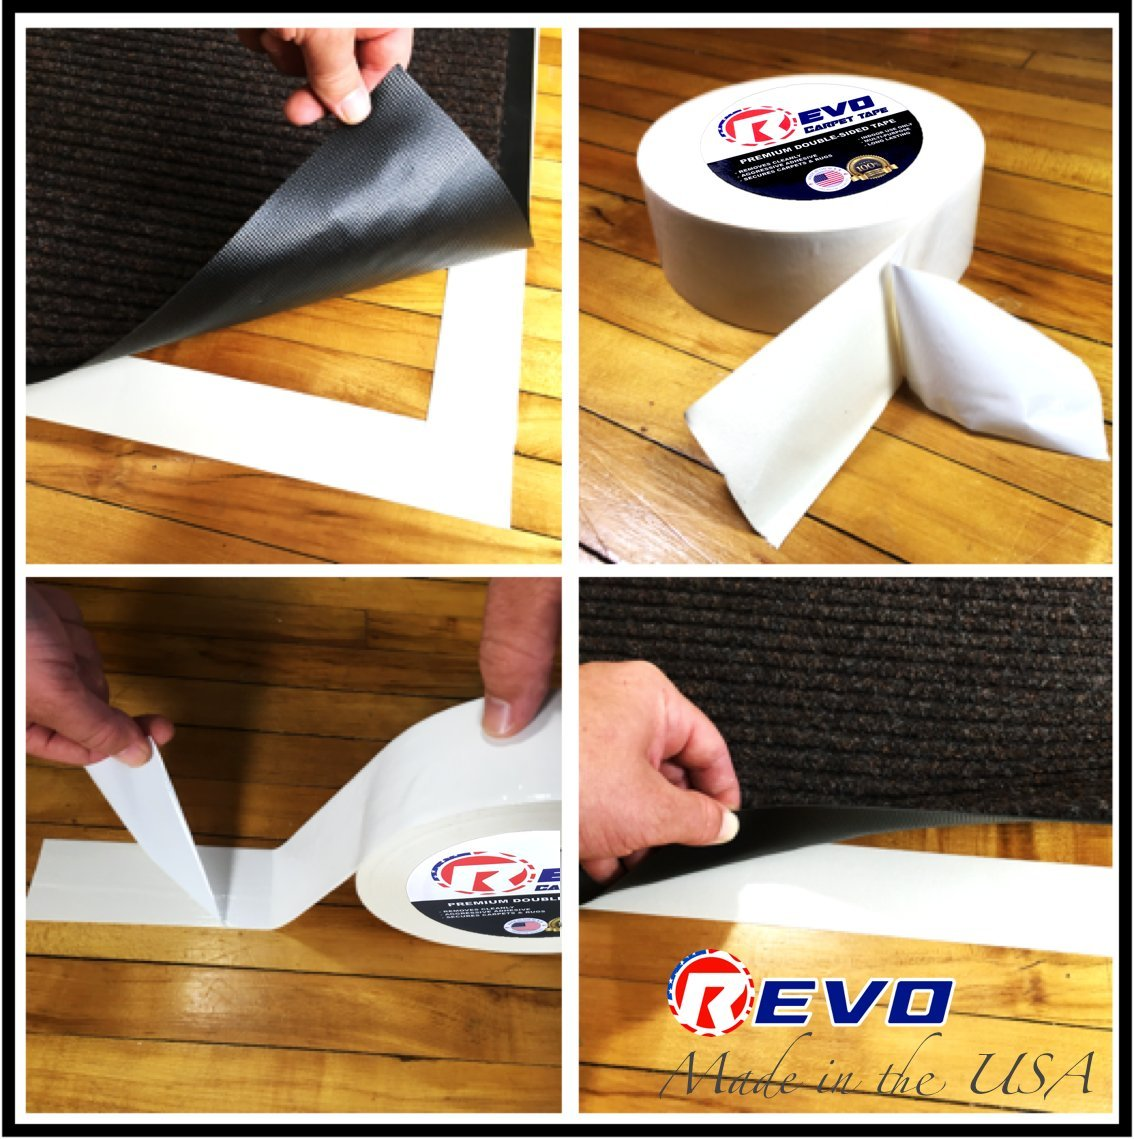 REVO Double Sided Carpet Tape (1.5'' x 36 yards) MADE IN USA - Aggressive Rubber Adhesive - Long lasting - Double Sided Tape - Professional Quality by Impact (Image #2)